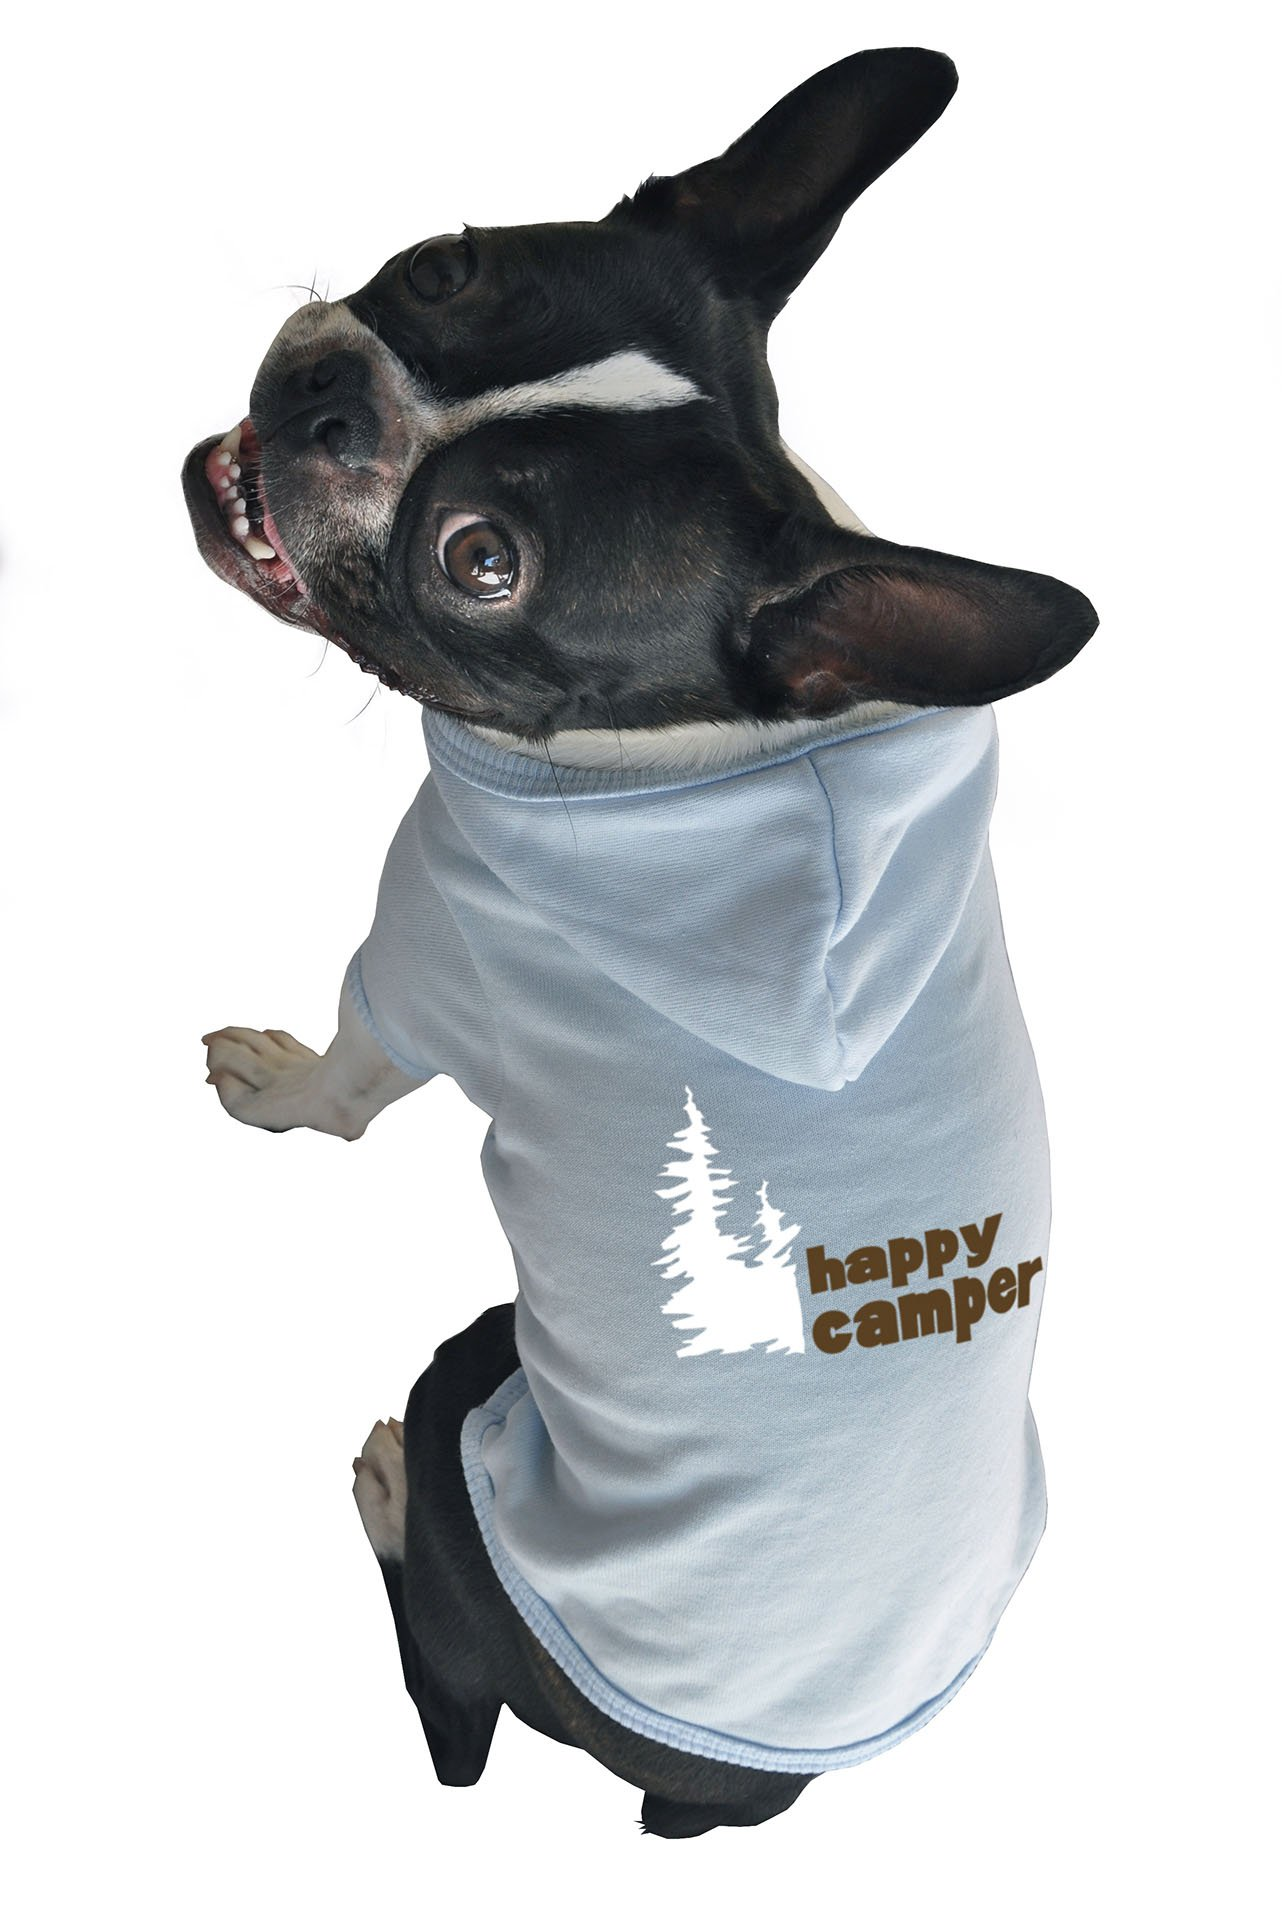 Ruff Ruff and Meow Dog Hoodie, Happy Camper, Blue, Medium by Ruff Ruff and Meow